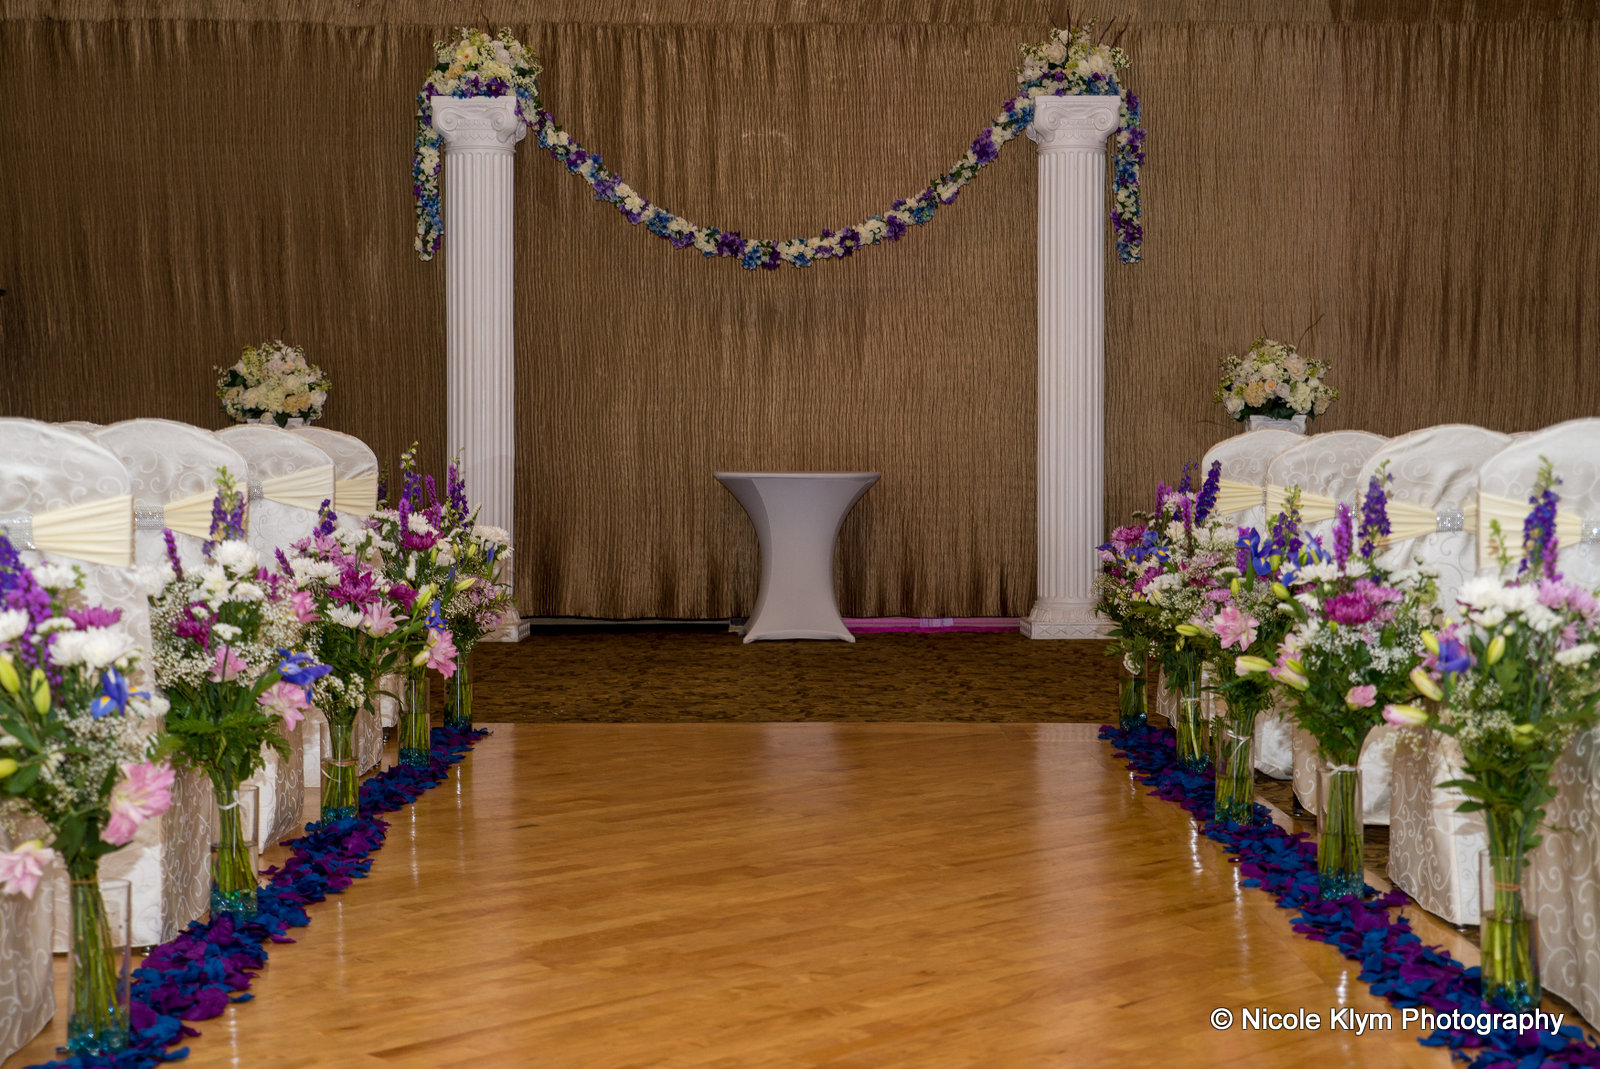 Spring wedding inspiration for nj crystal ballroom for Ball room decoration